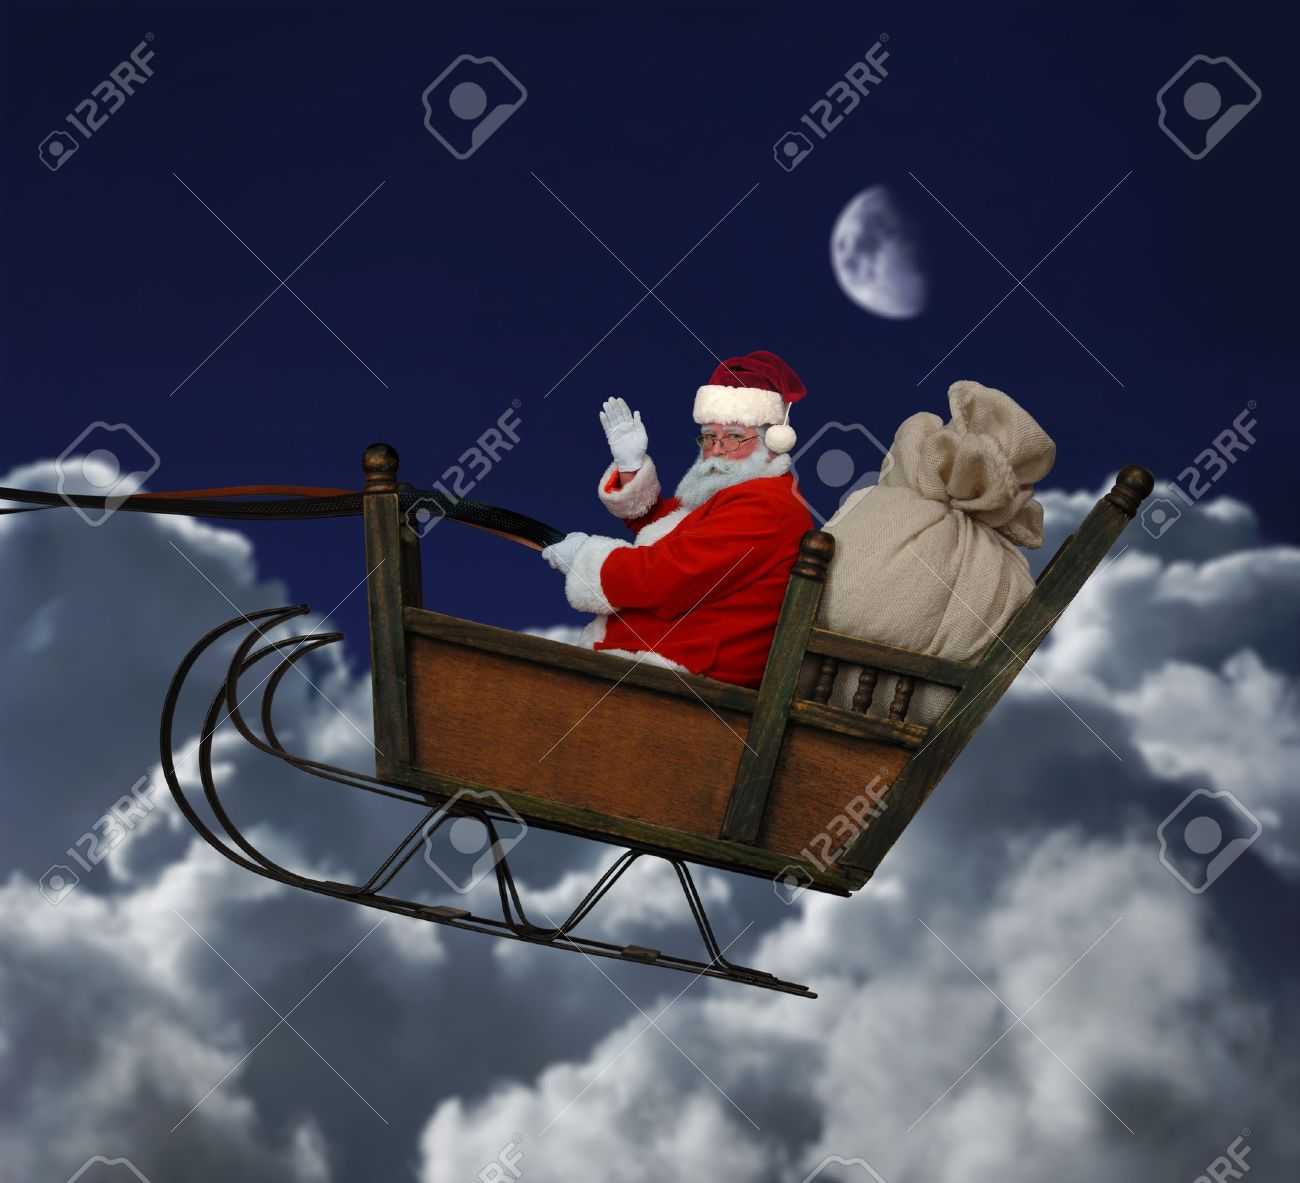 Santa in his sleigh flying throught a nighttime cloudscape Stock Photo - 9519816